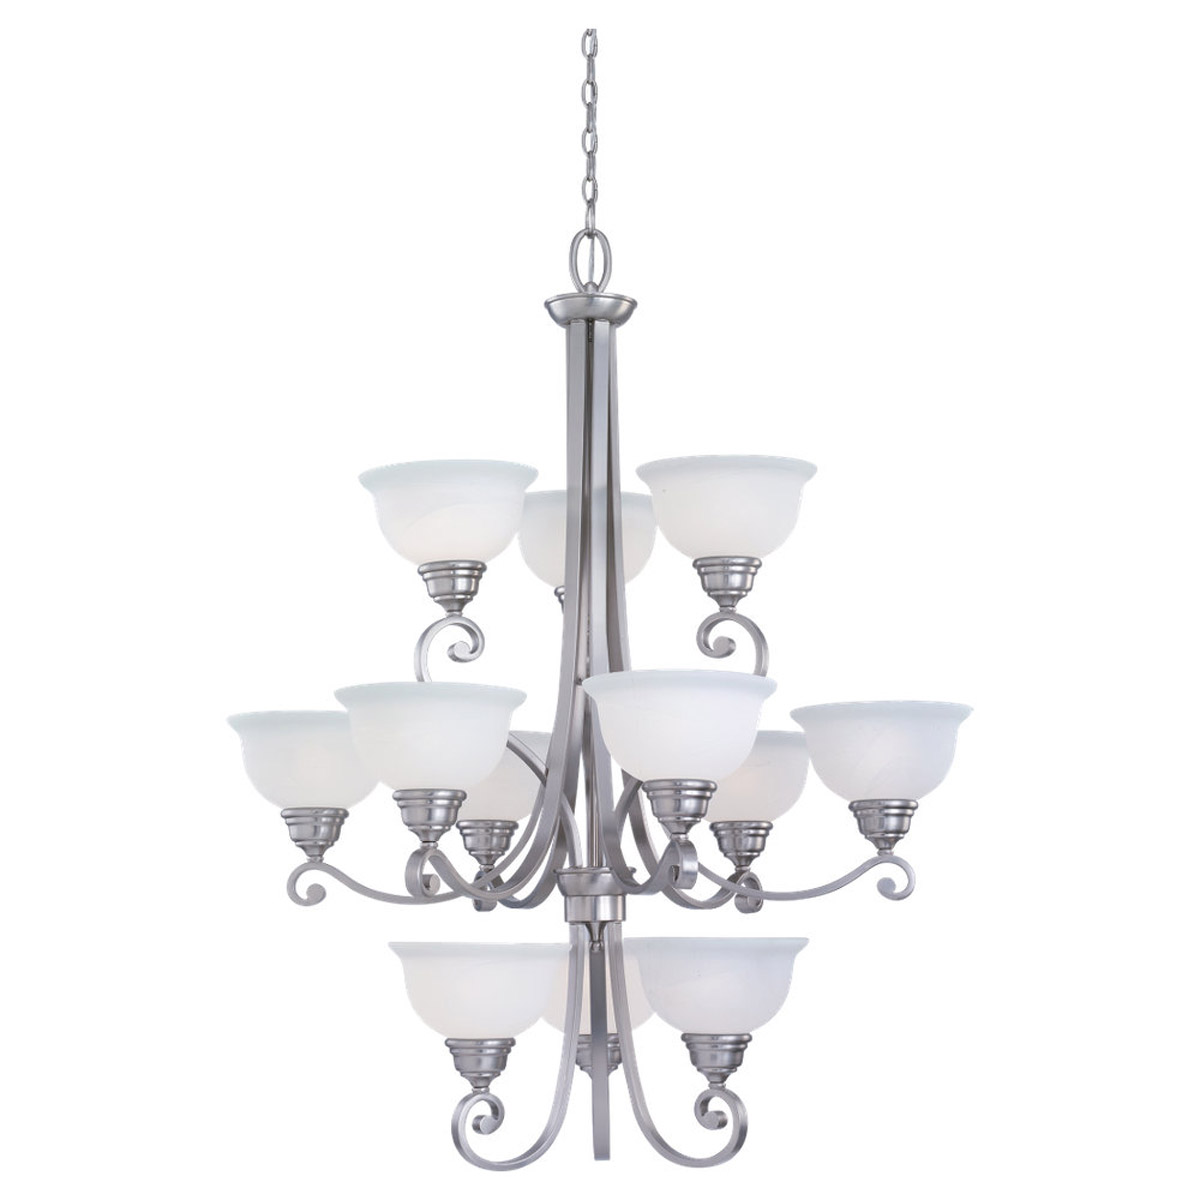 Sea Gull Lighting Serenity 12 Light Chandelier in Brushed Nickel 31193-962 photo